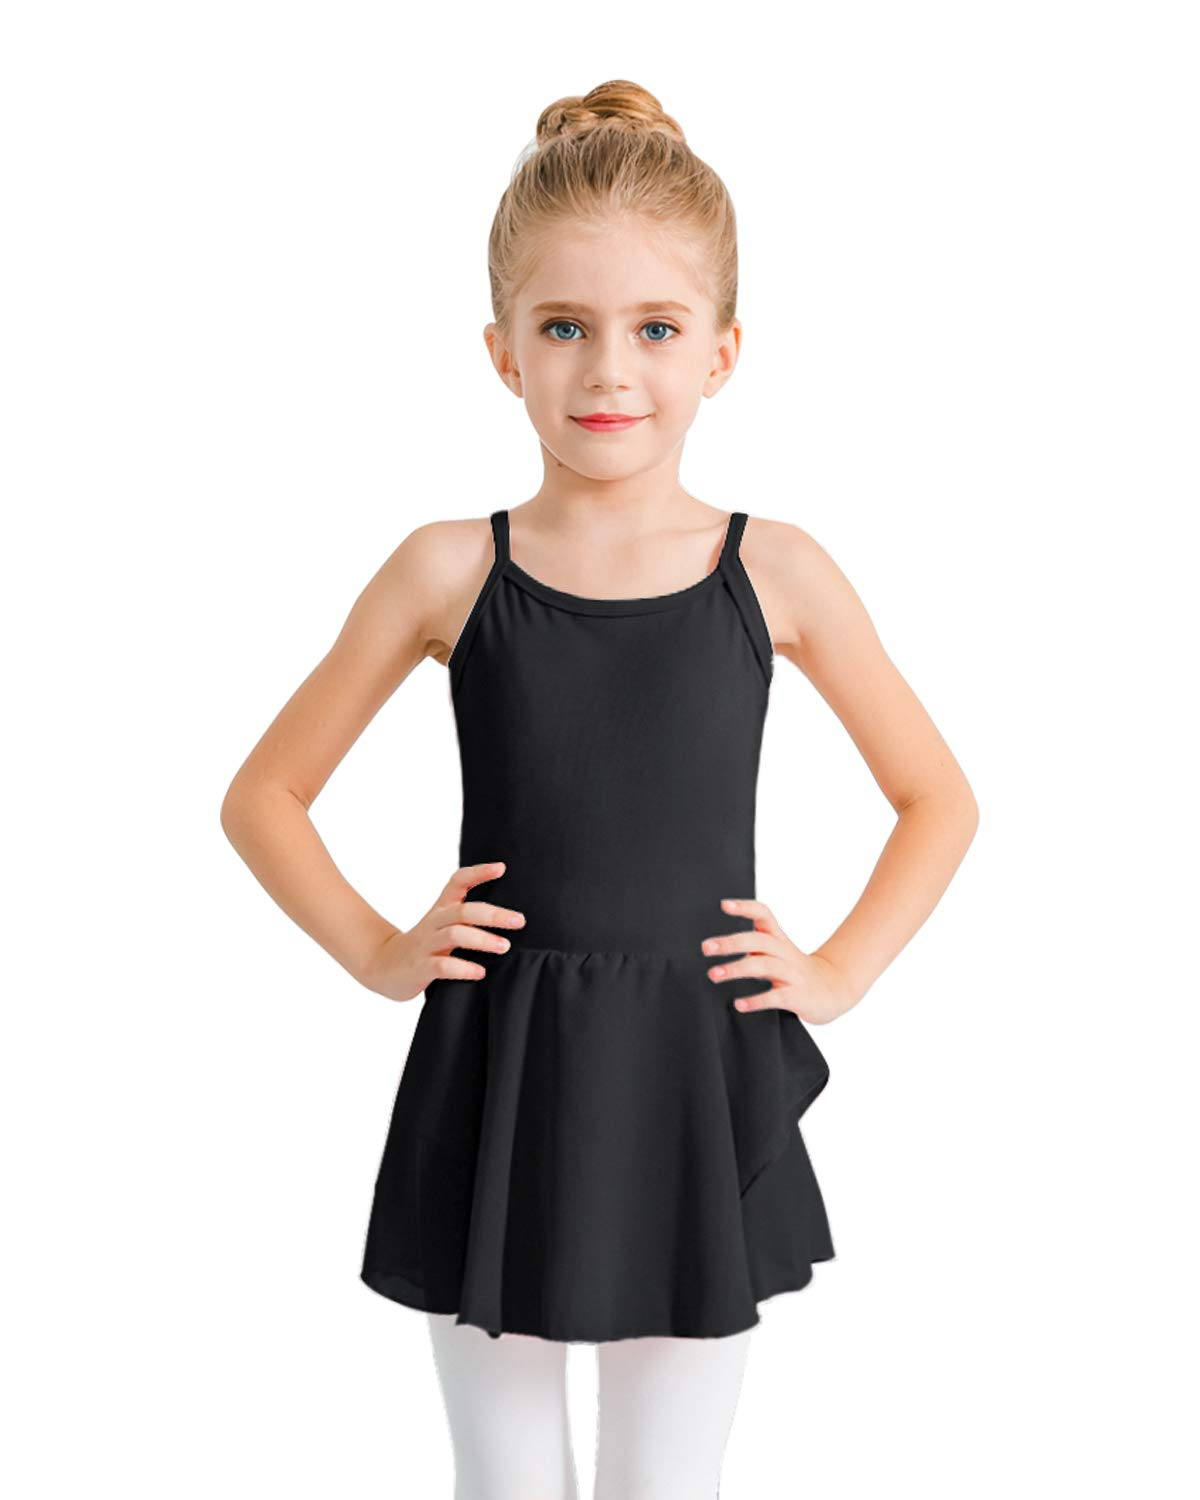 Stelle Girls Camisole Dress Leotard For Dance Gymnastics And Ballettoddlerlittle Girlbig Girlm Black